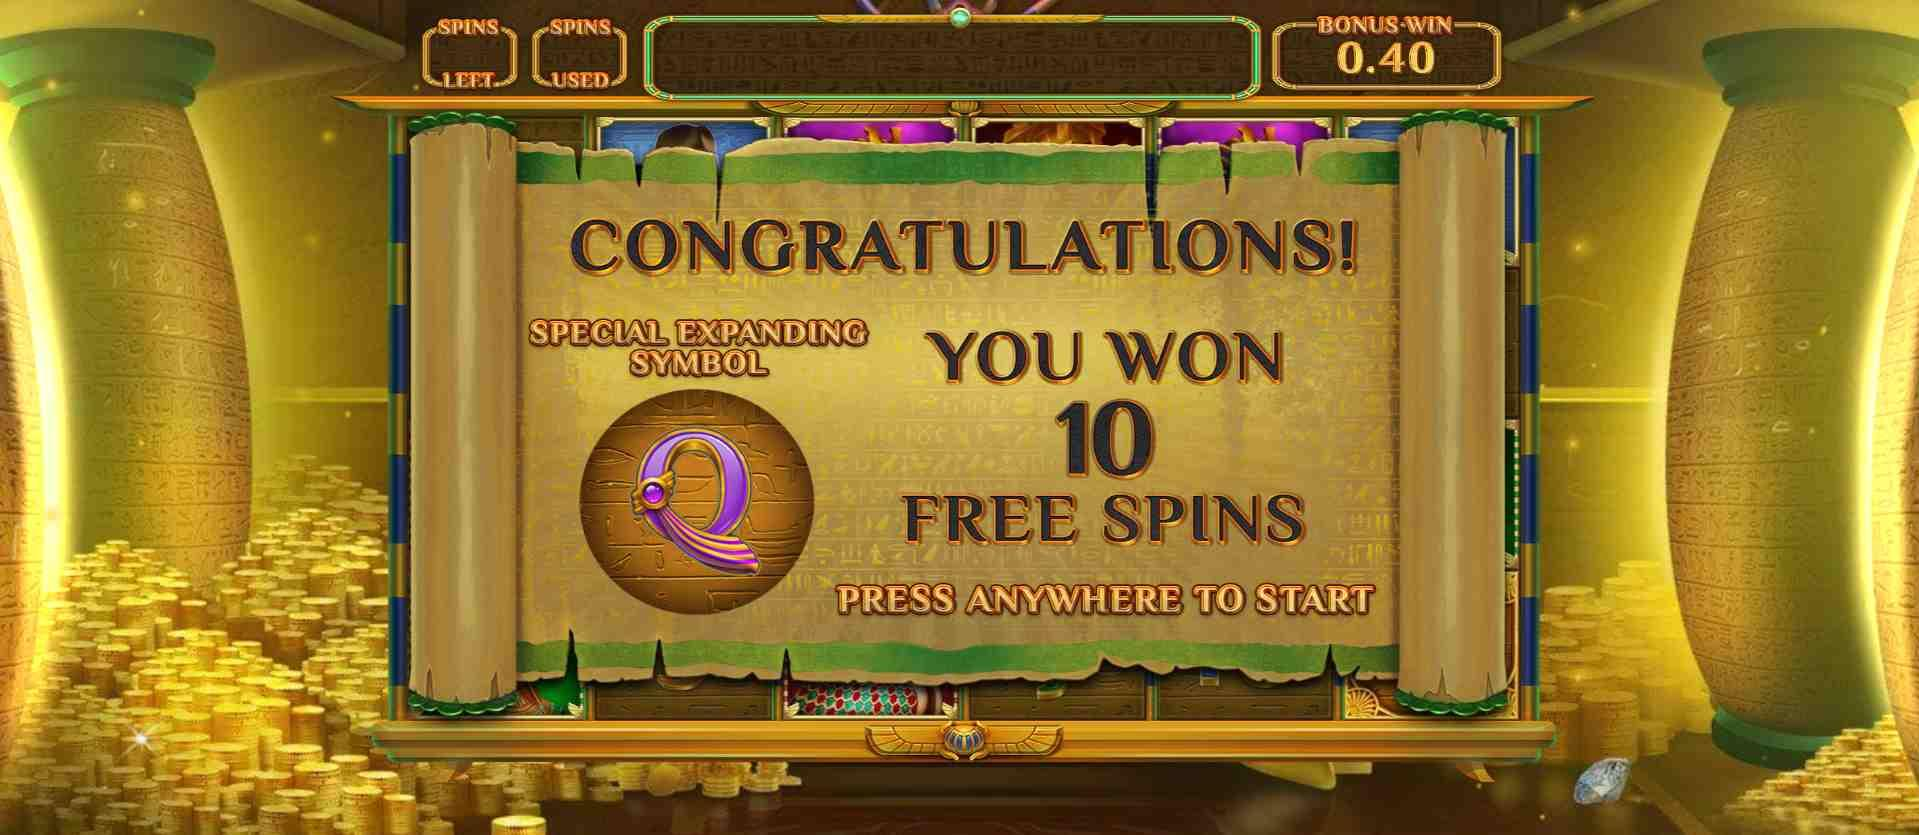 Crypt of Dead Slot Free Spins